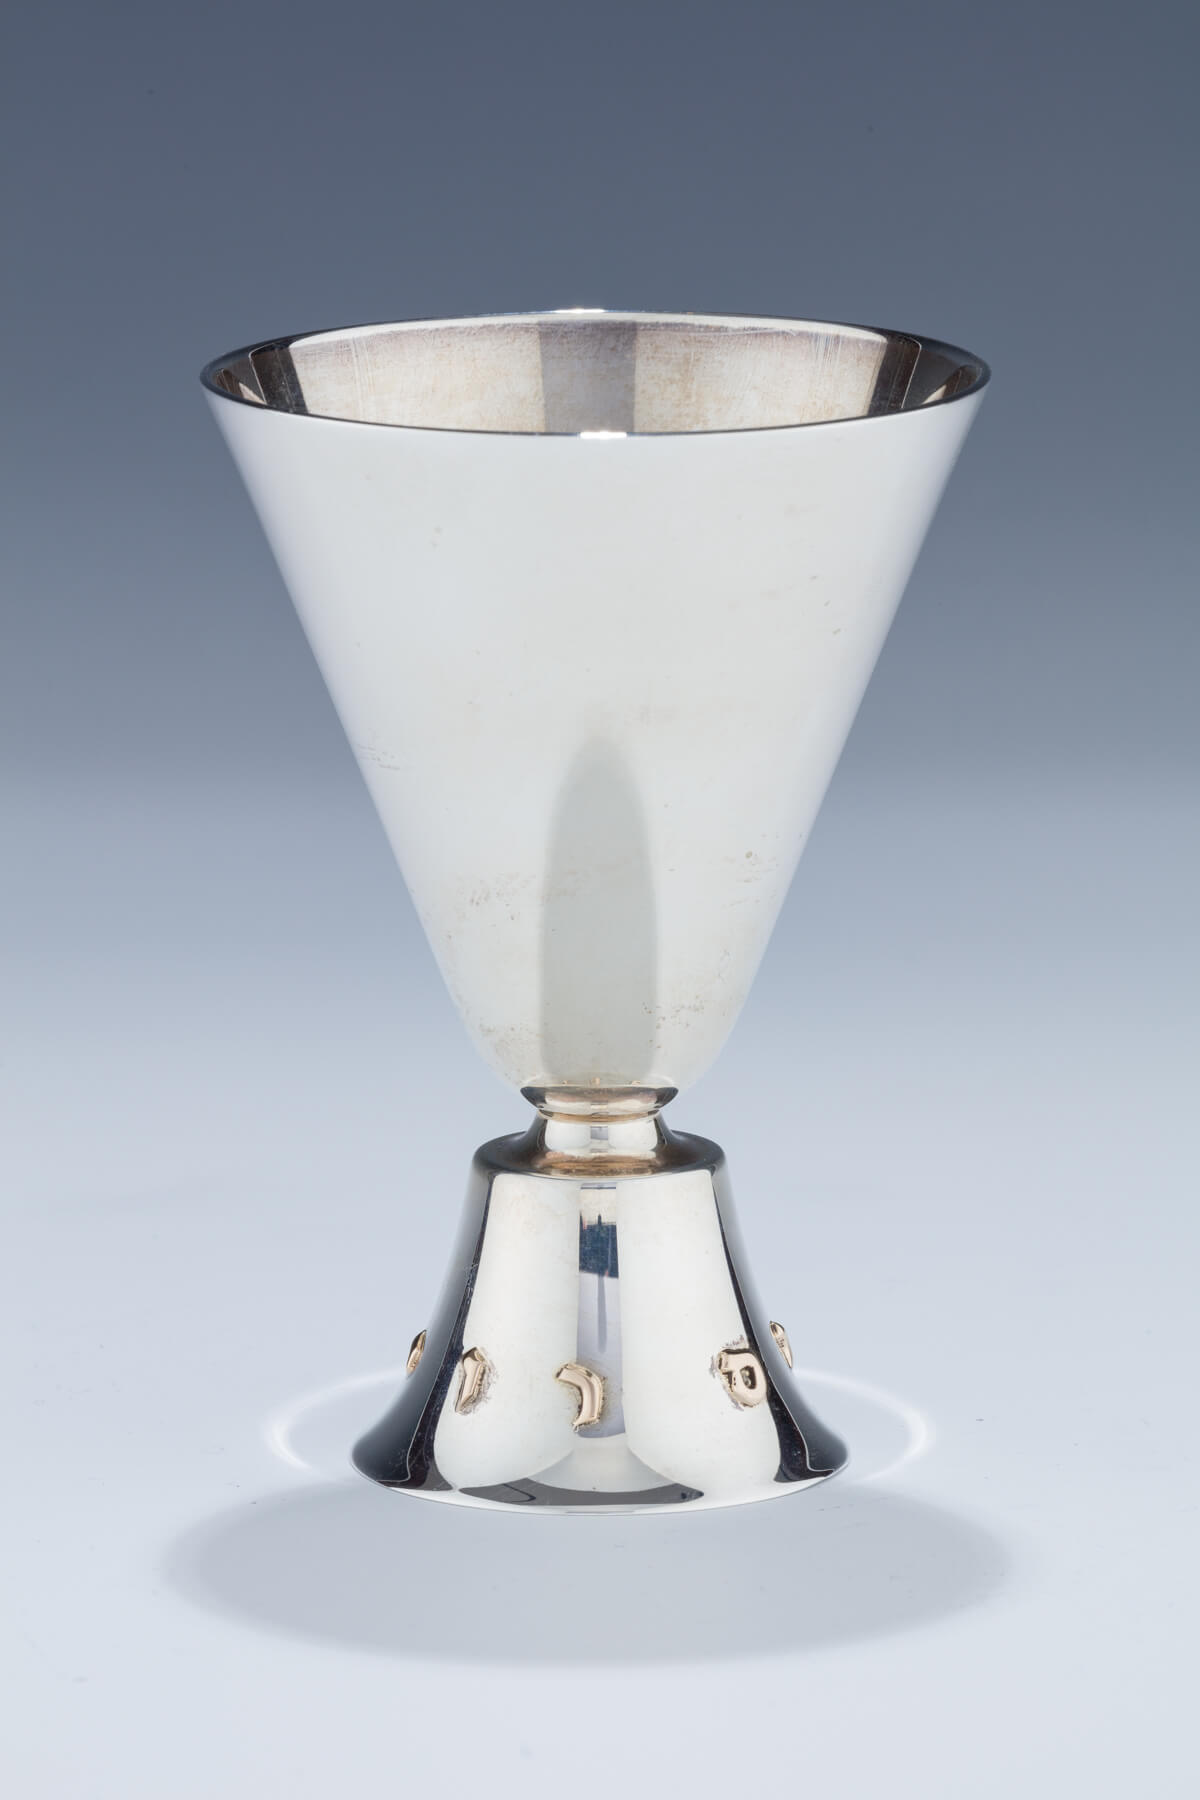 153. A Sterling Silver Kiddush Cup